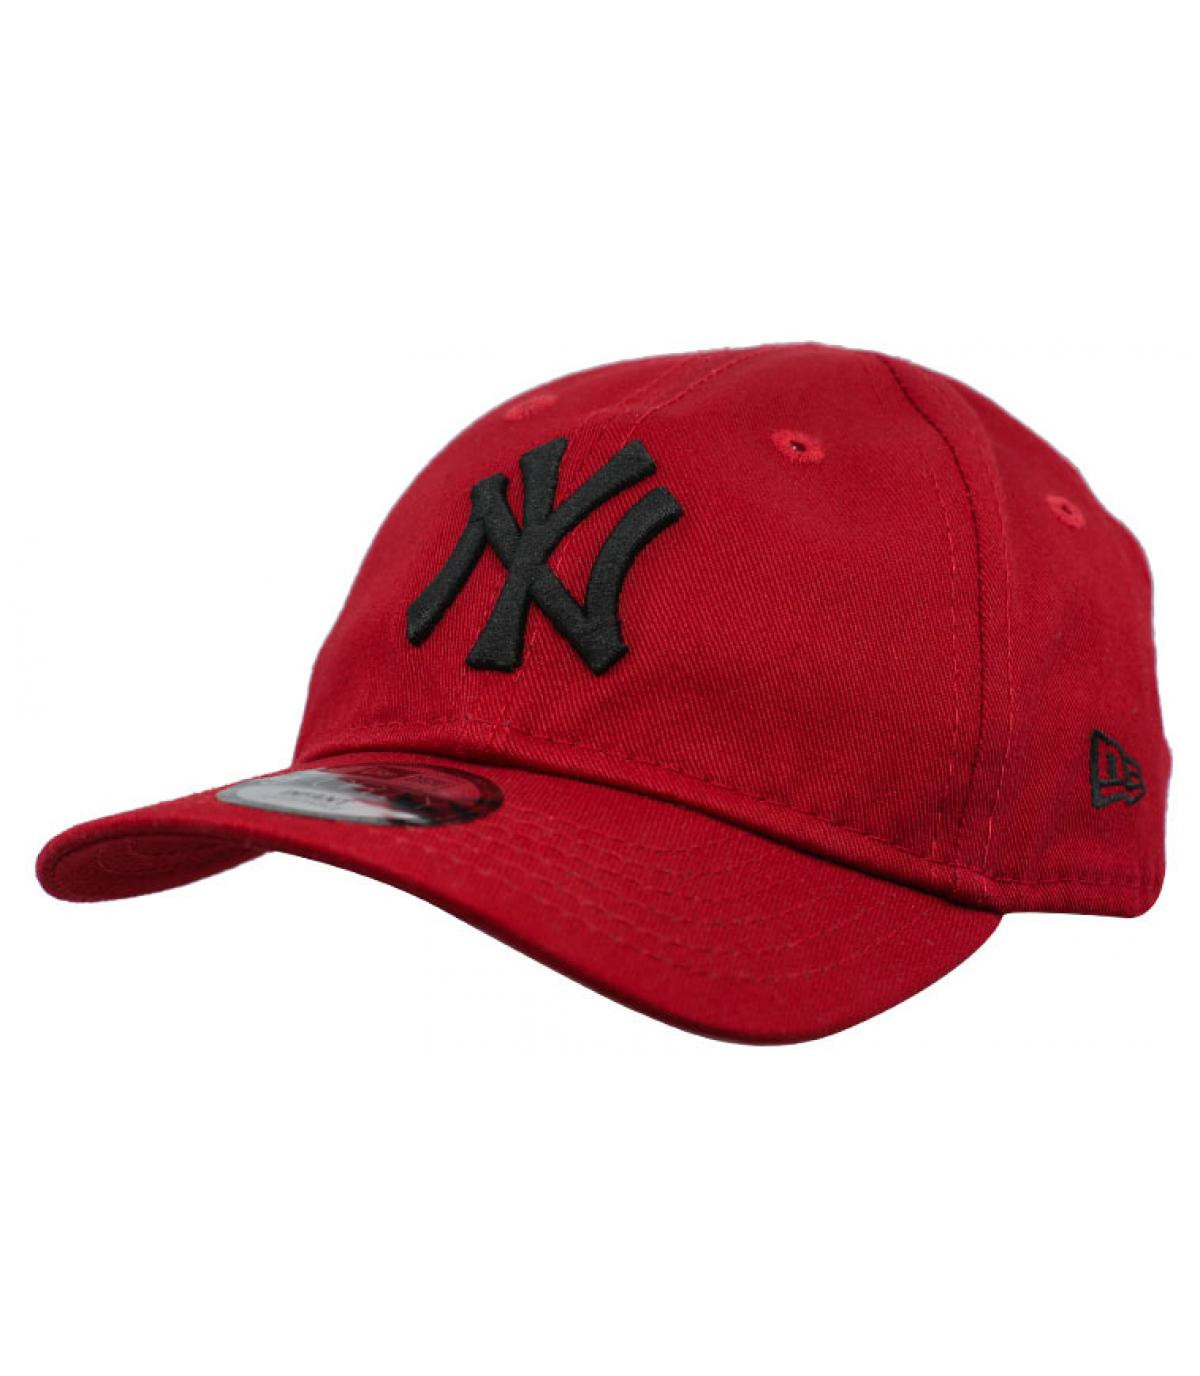 Détails Casquette Baby League Ess NY 9Forty hot red black - image 2